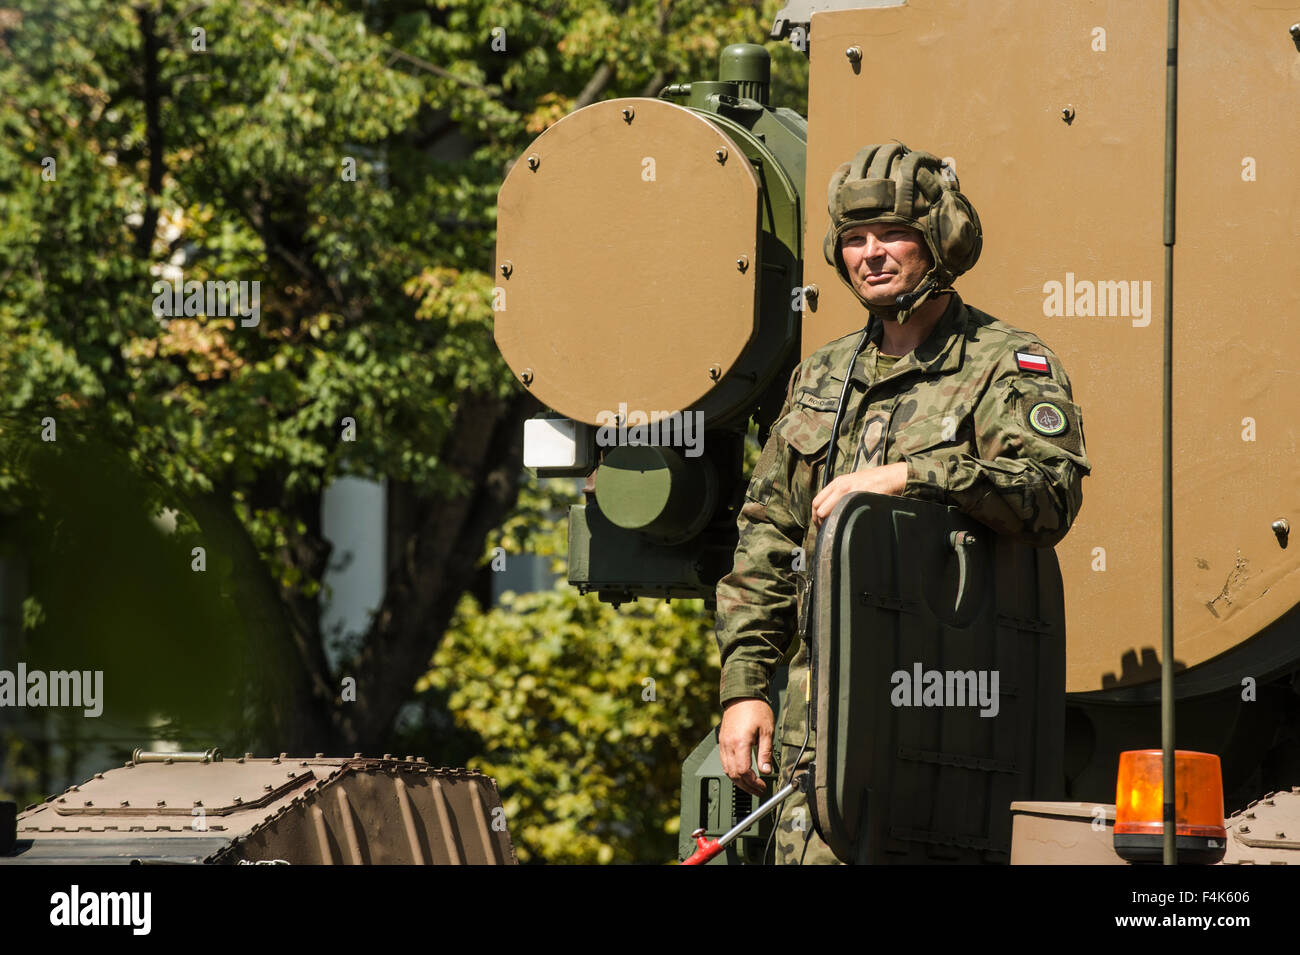 A soldier of the Polish Military attends the Armed Forces Day in Warsaw - Stock Image